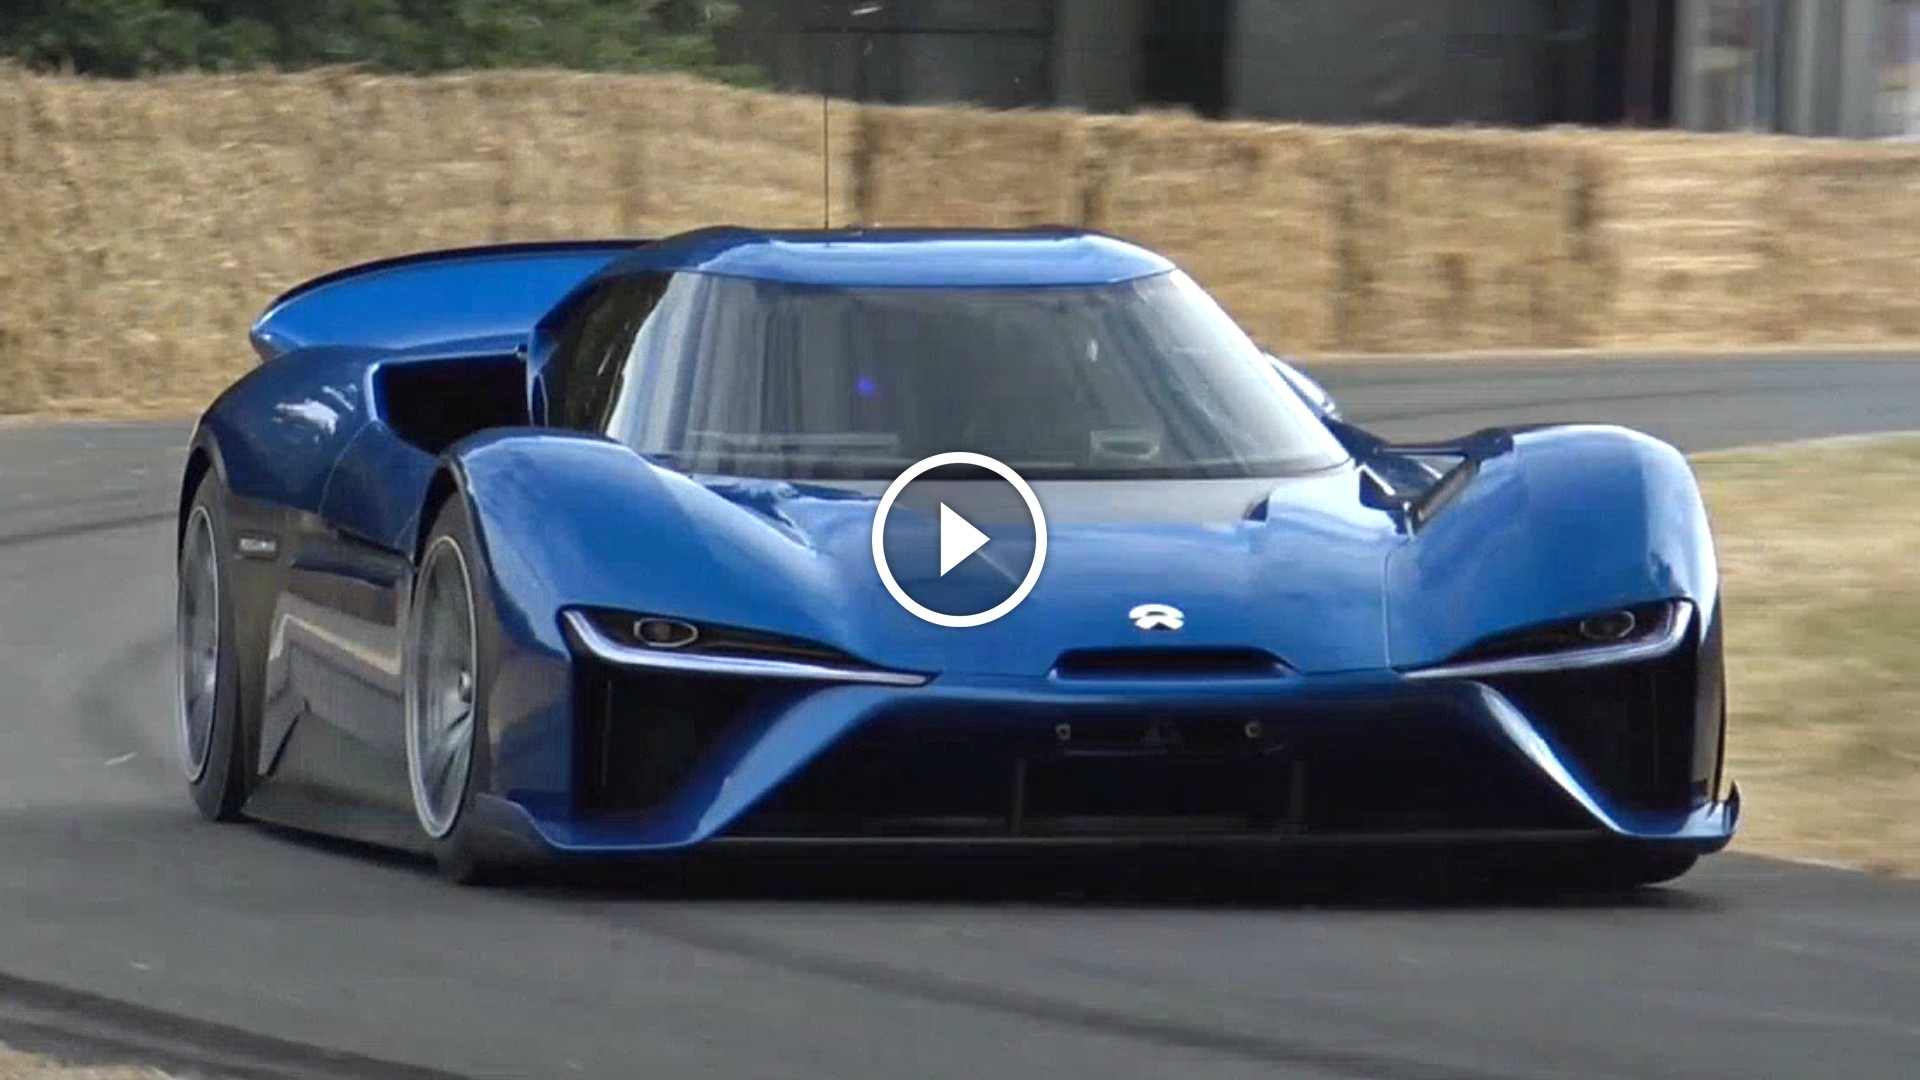 Watch The World S Fastest Electric Road Car Driven Flat Out At Goodwood Fos Test By Drivetribe Medium